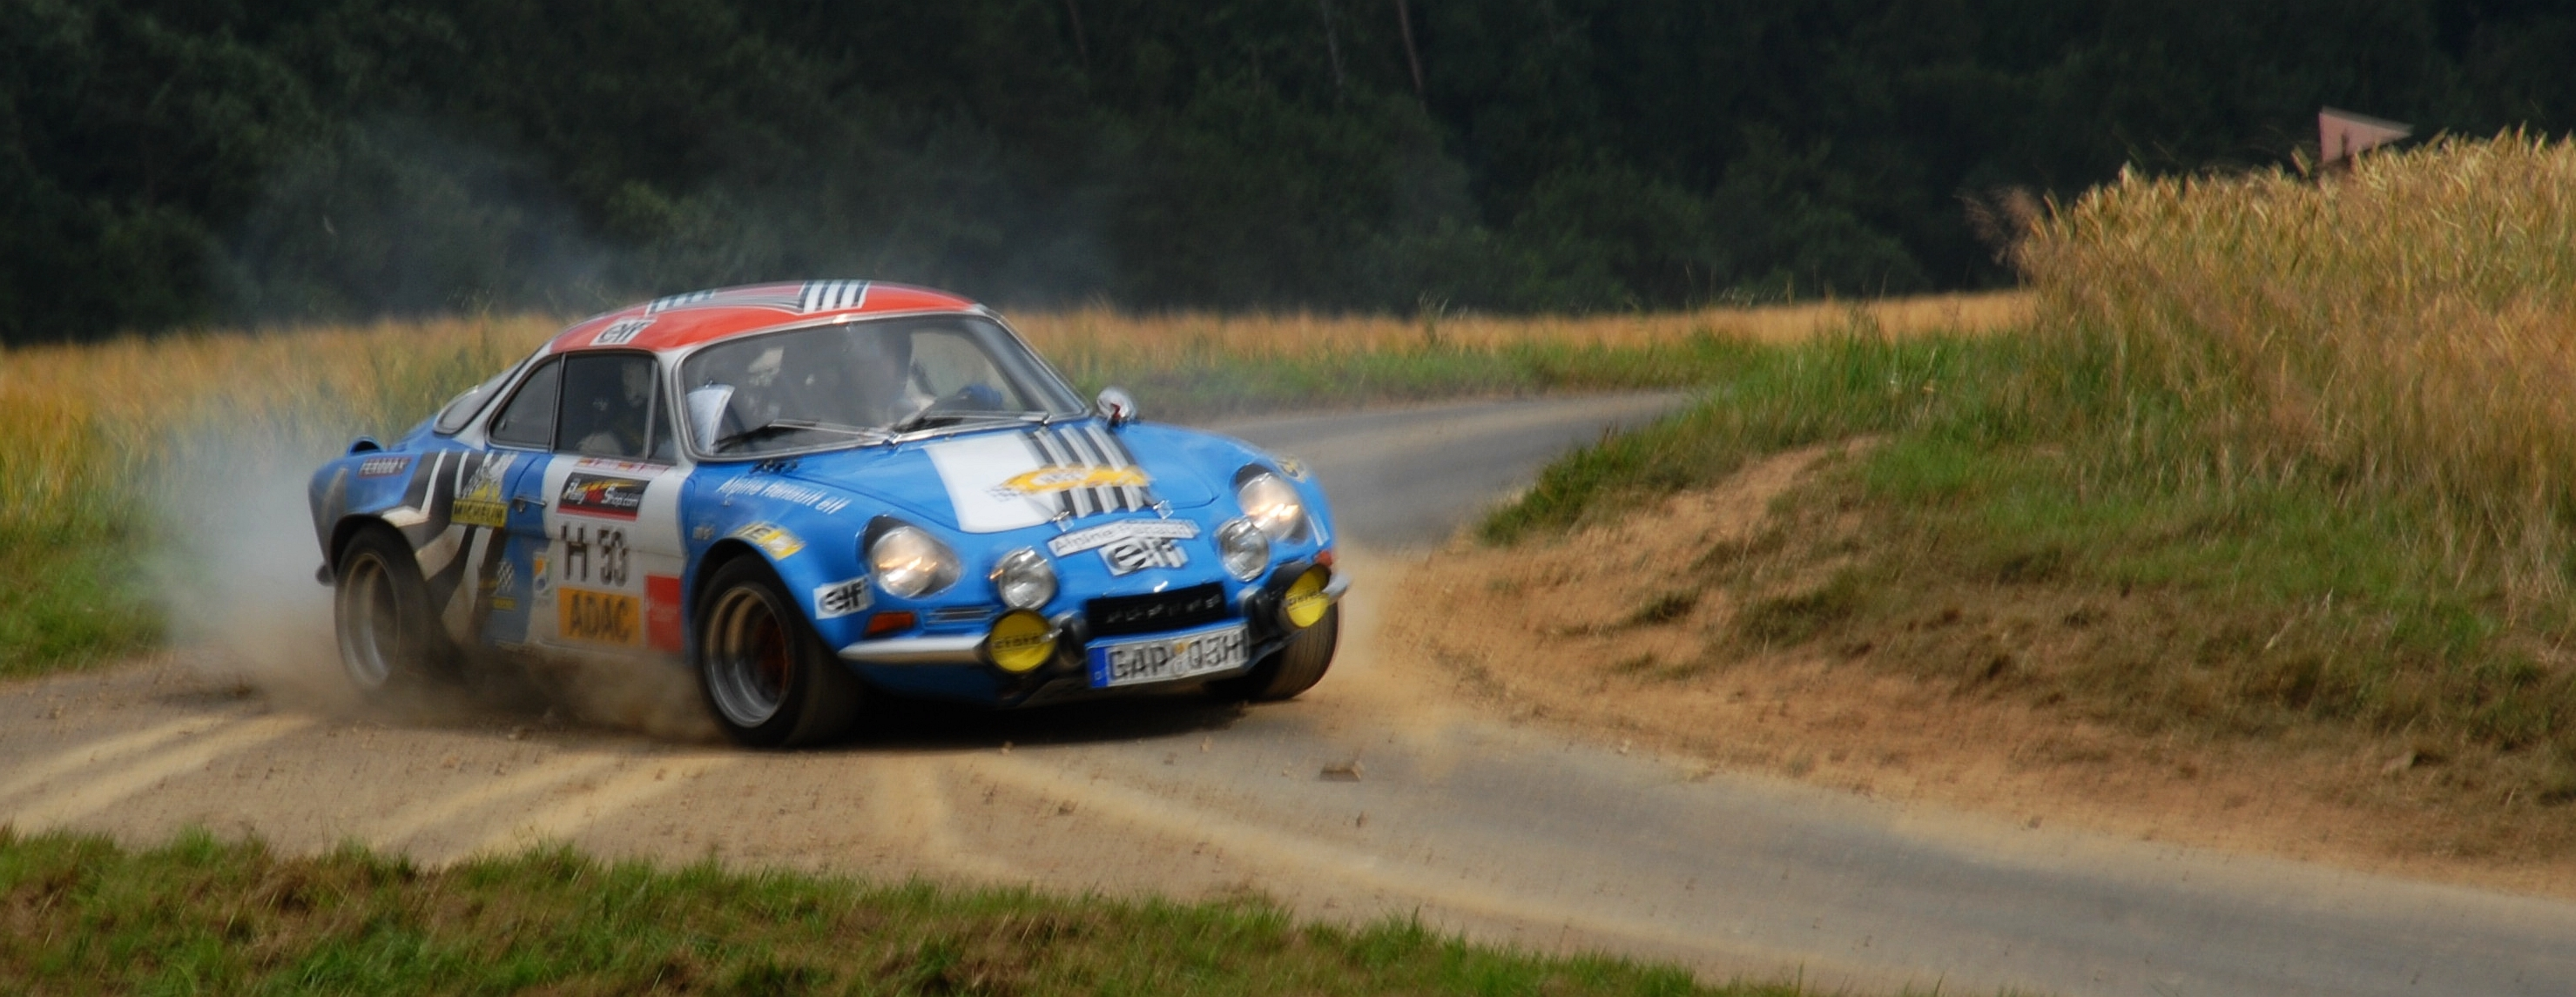 cars rally Renault Alpine HD Wallpaper